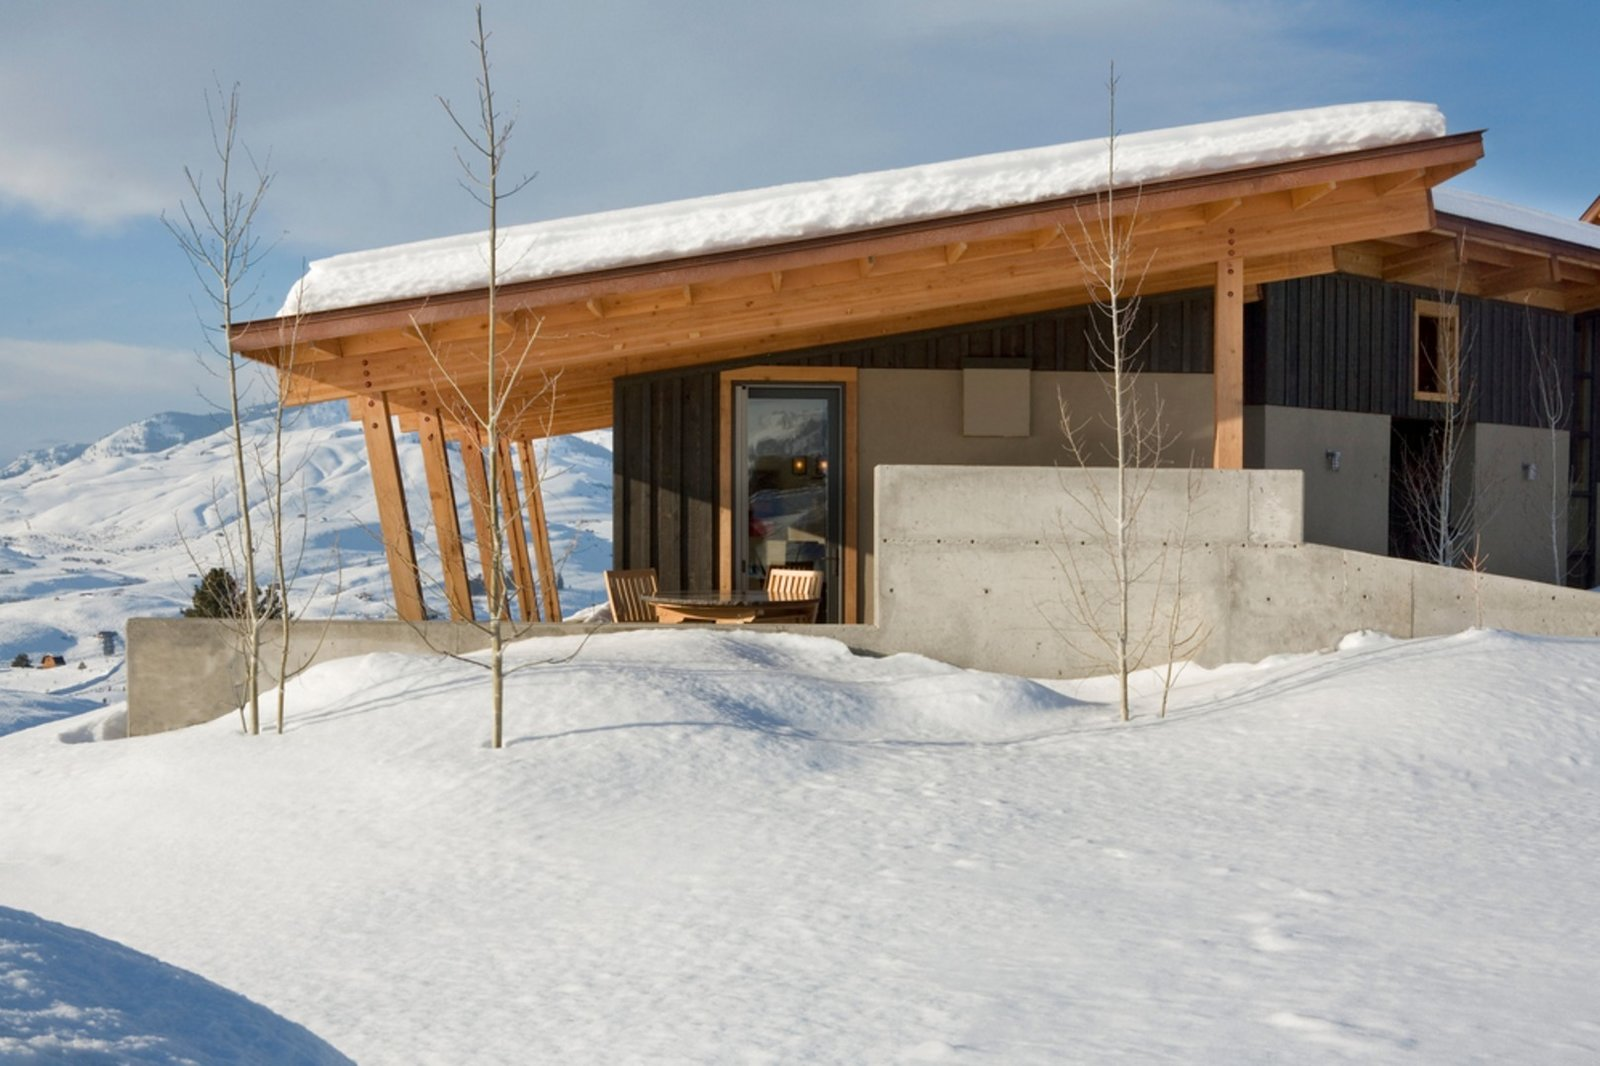 Stud Horse Mountain home in Methow Valley, WA; Architects Prentiss Balance Wickline (PBW) Architects; Photo courtesy of PBW Architects   Cabins & Hideouts from Cabin Fever